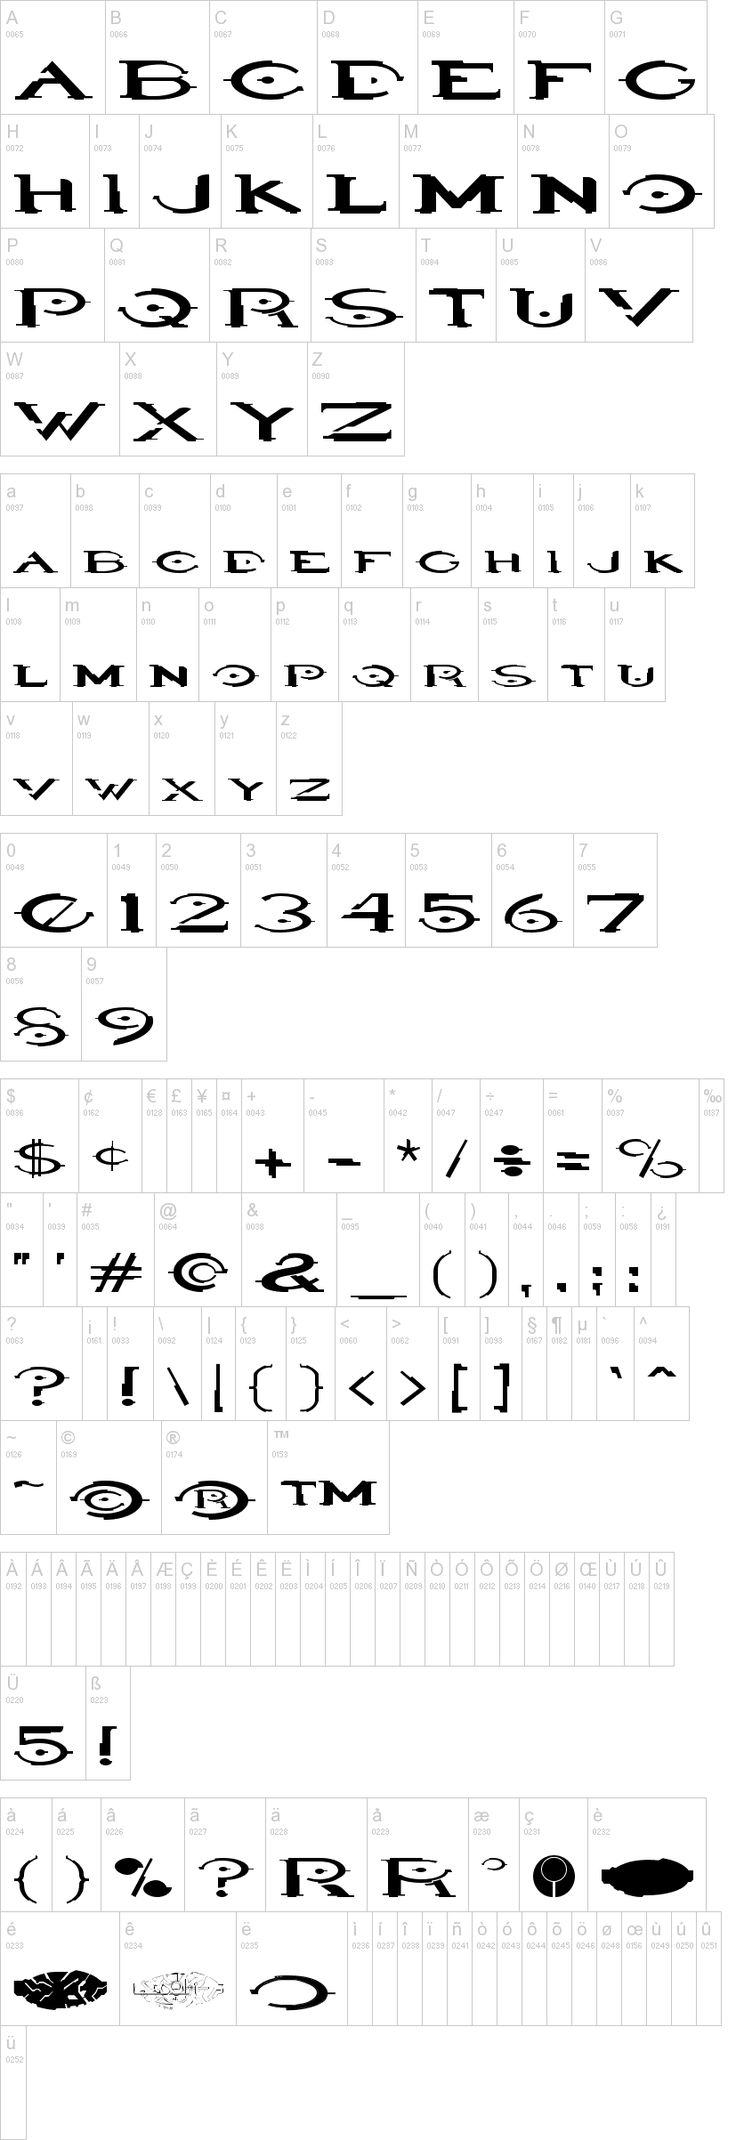 Halo font, representing the sci-fi/angular arcitecture throughout the game.